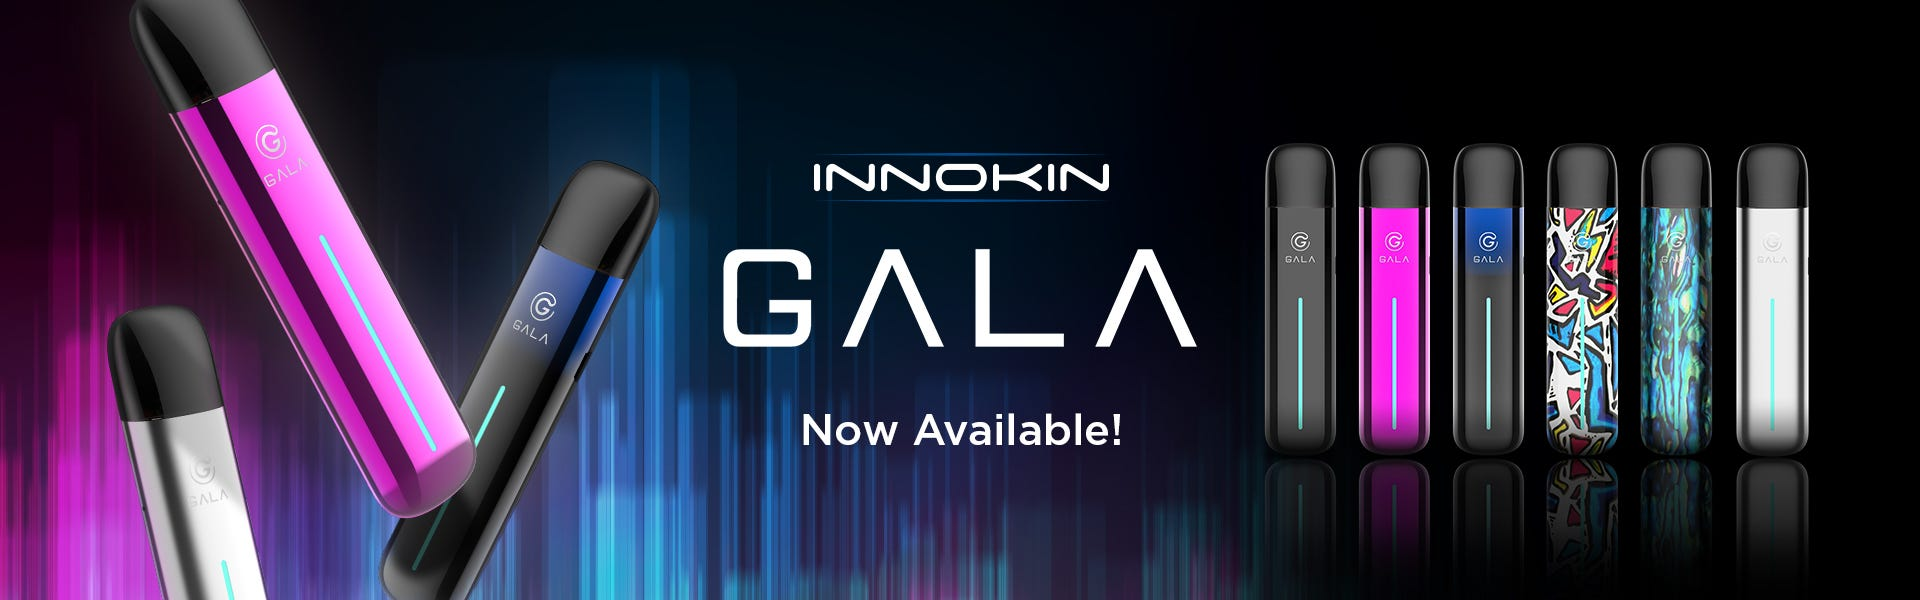 Gala vape pod system by INNOKIN is now available